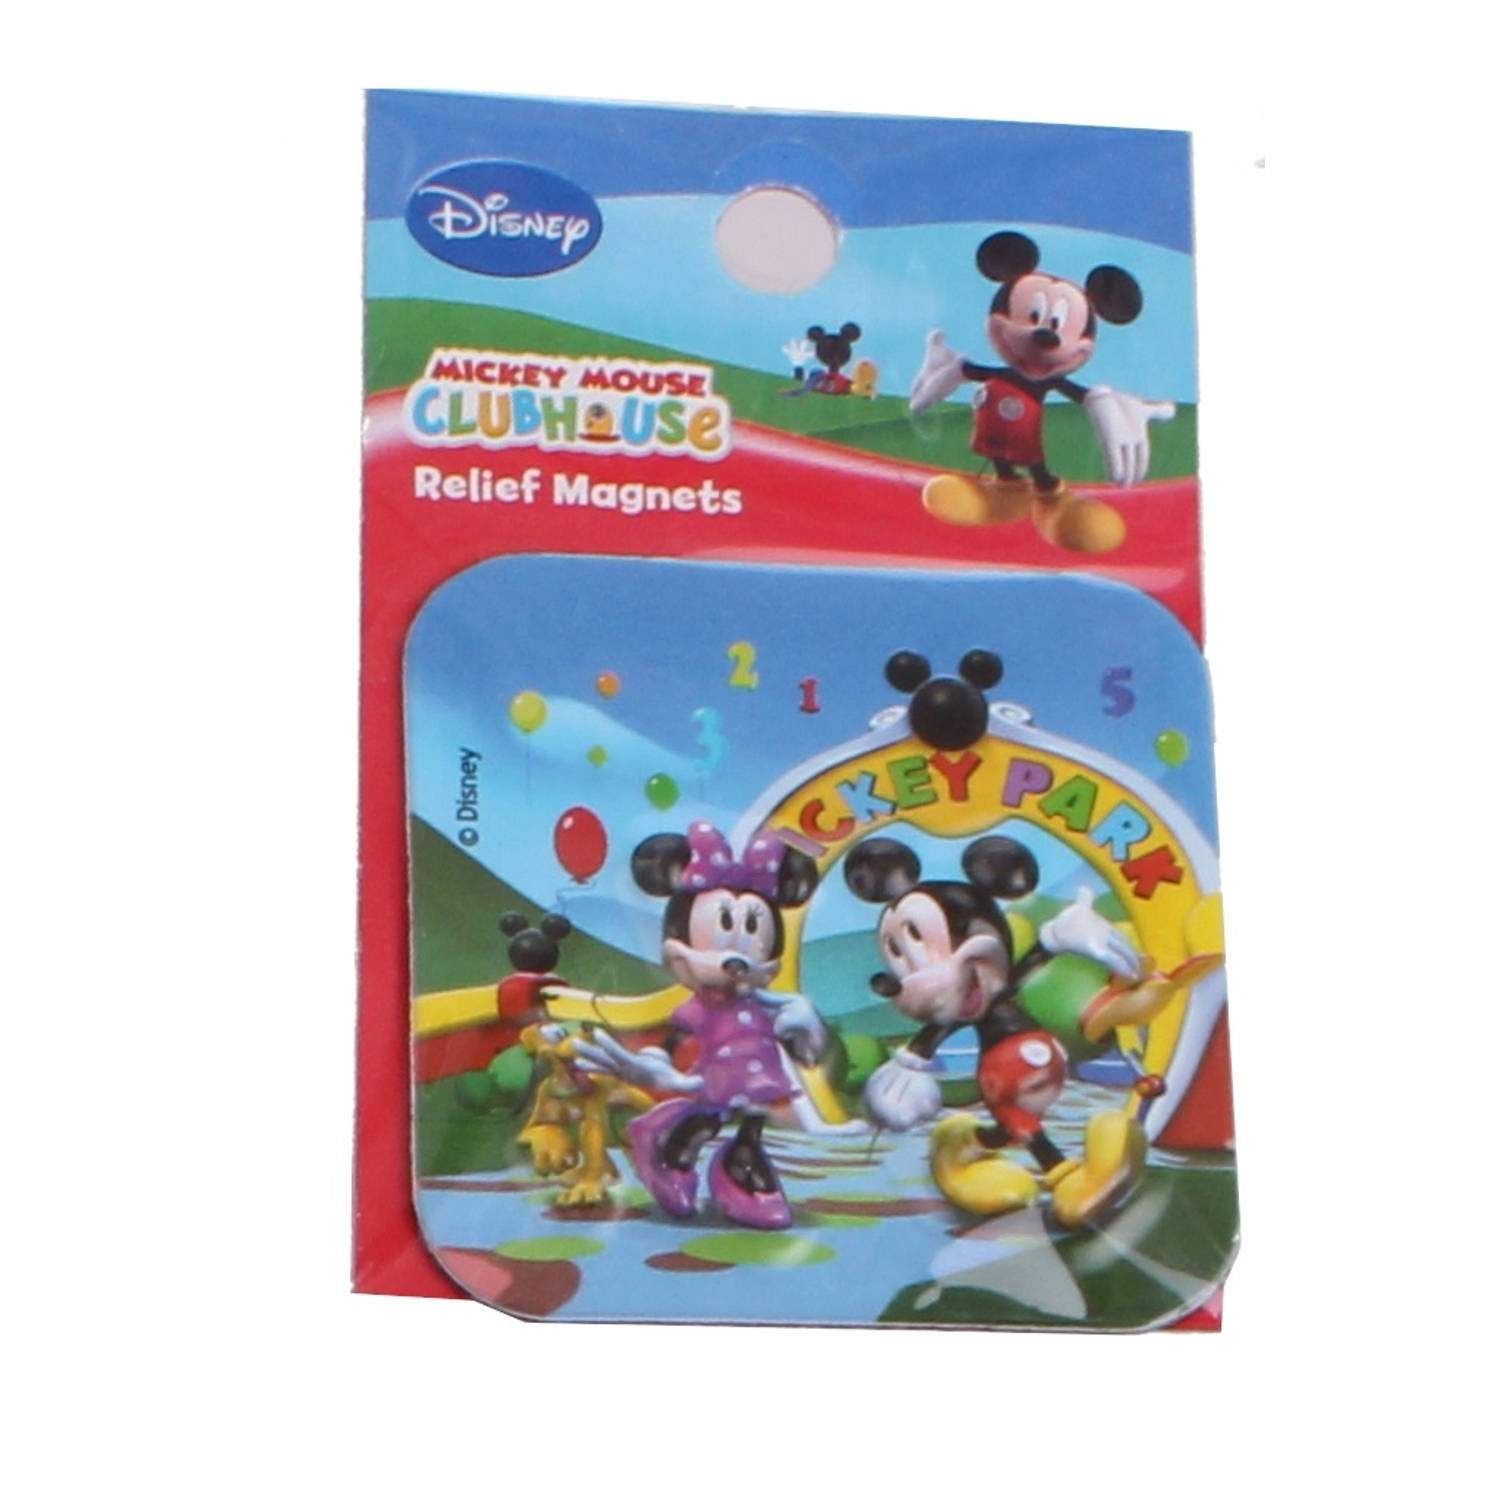 Korting Disney Mickey Mouse Clubhouse Magneet ( 3)